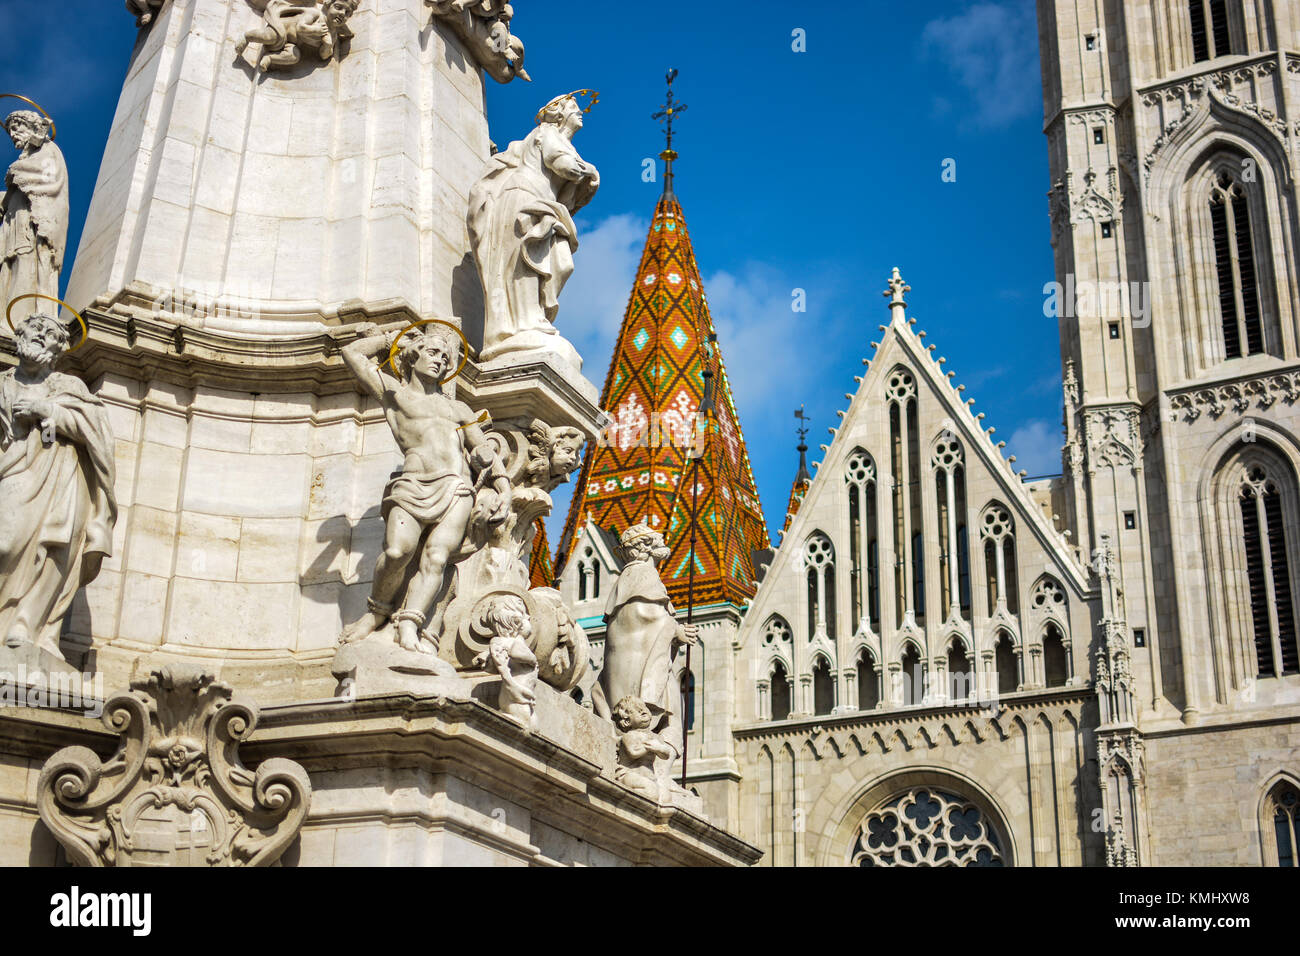 Matthias Church on a sunny day in early autumn at Budapest's Castle District - Stock Image